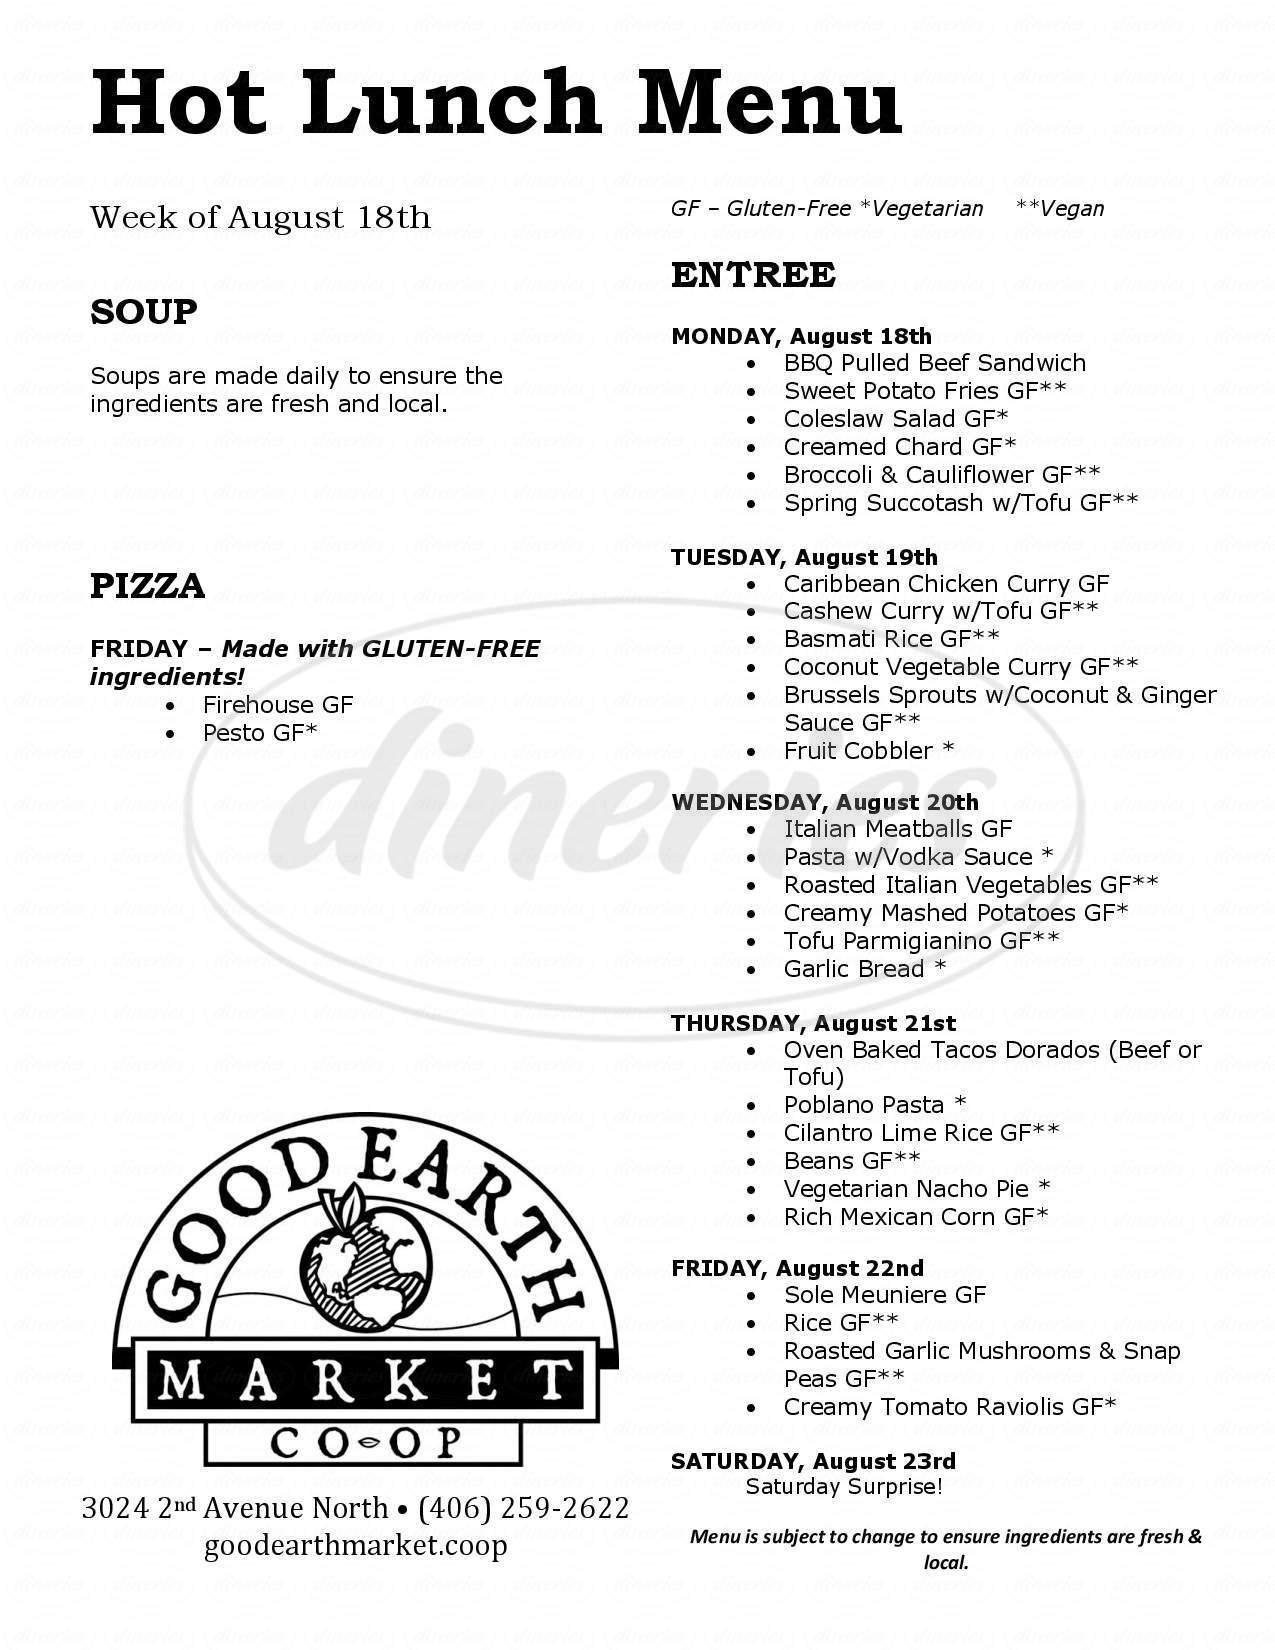 menu for Good Earth Market